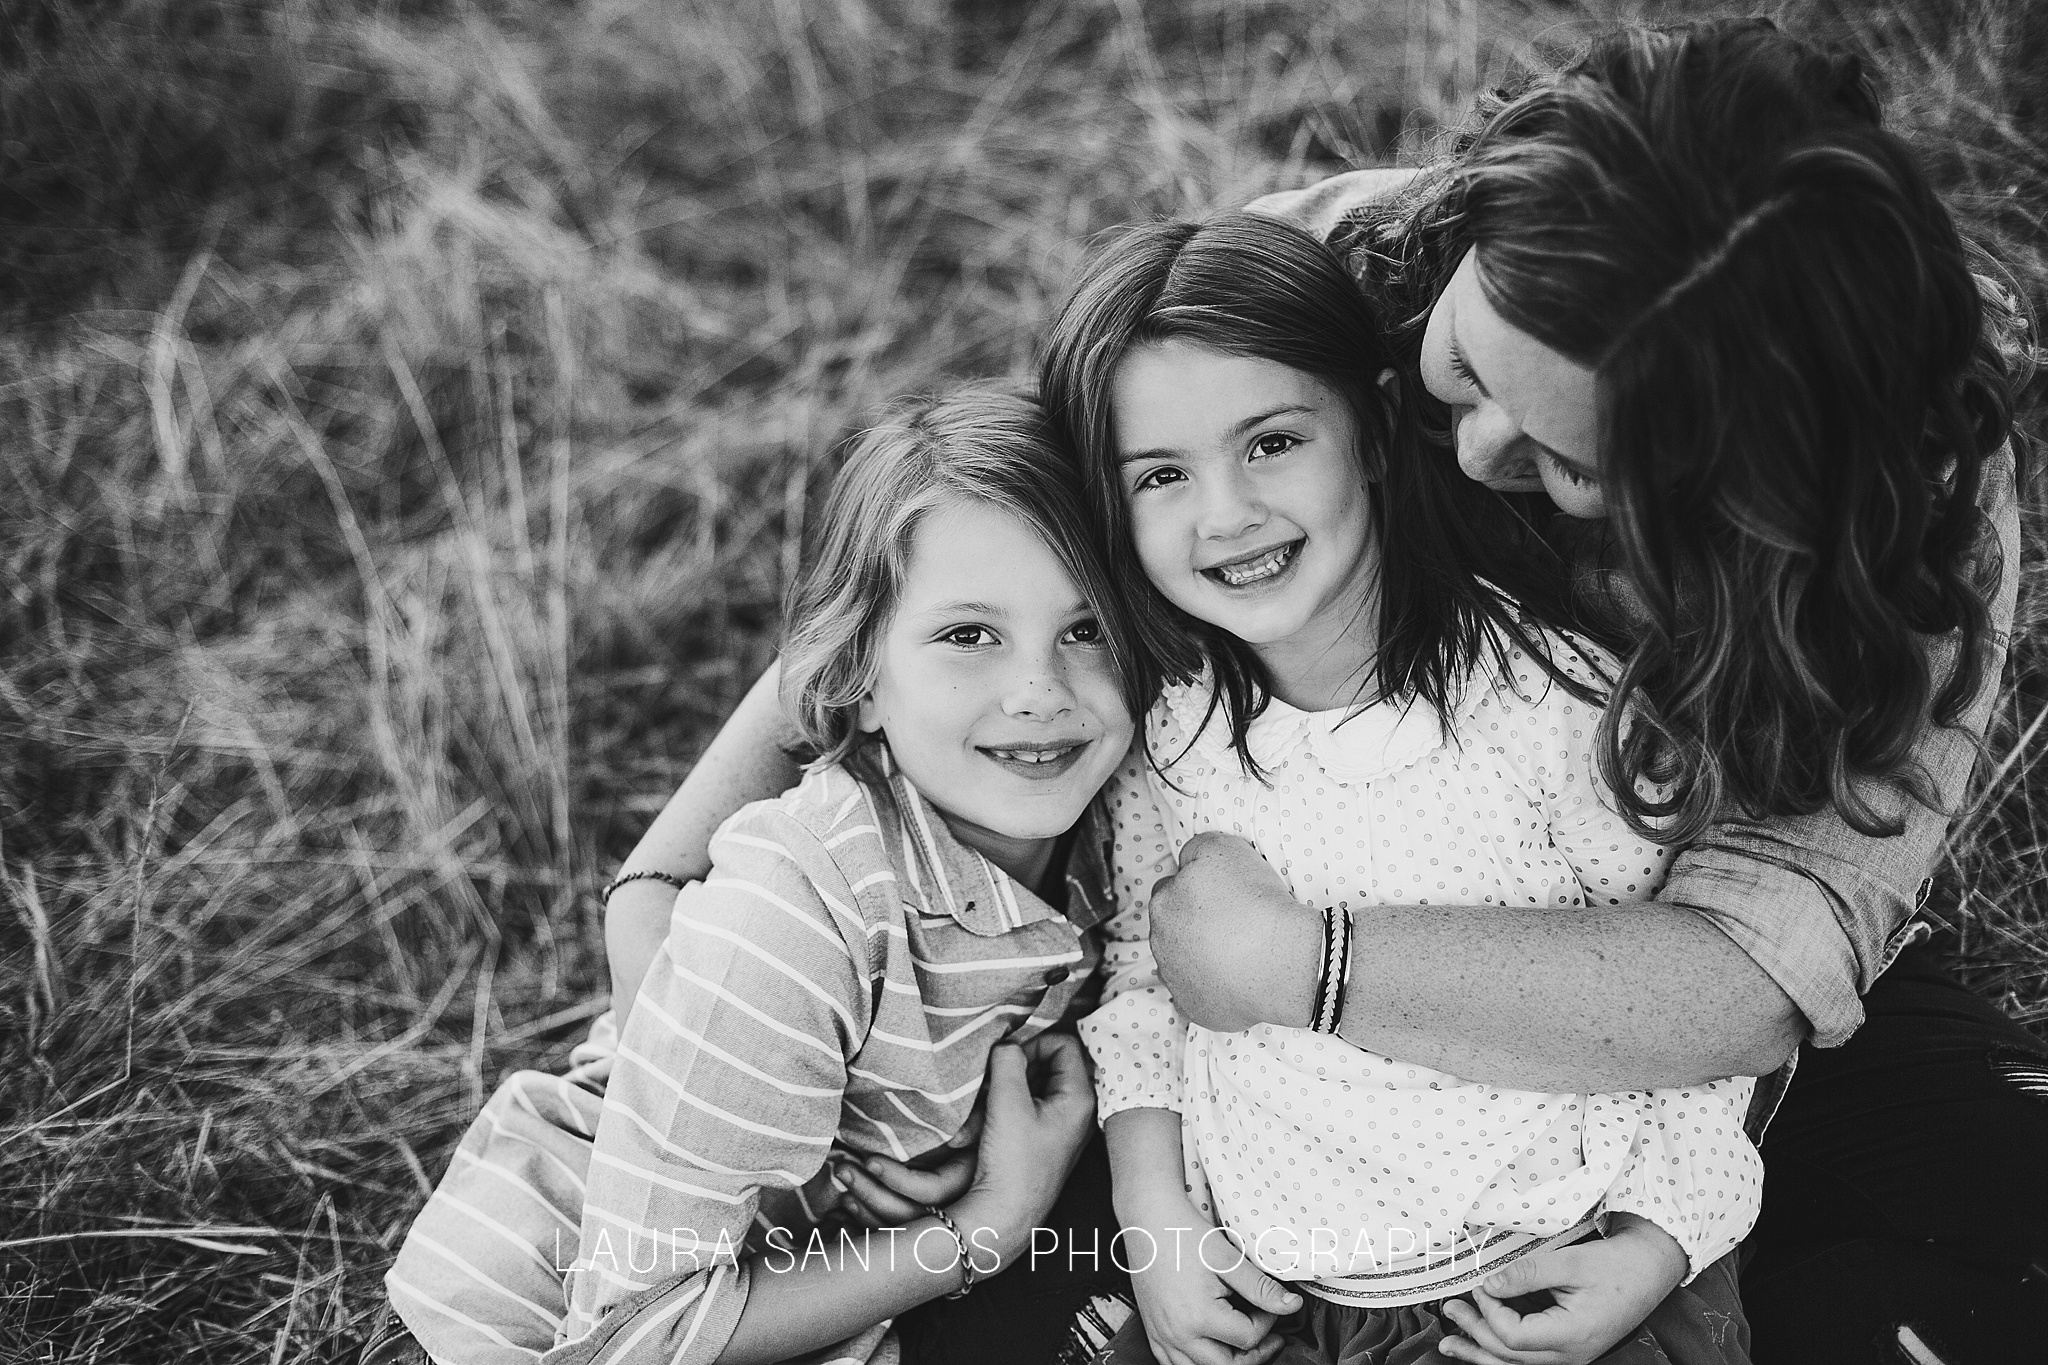 Laura Santos Photography Portland Oregon Family Photographer_0900.jpg